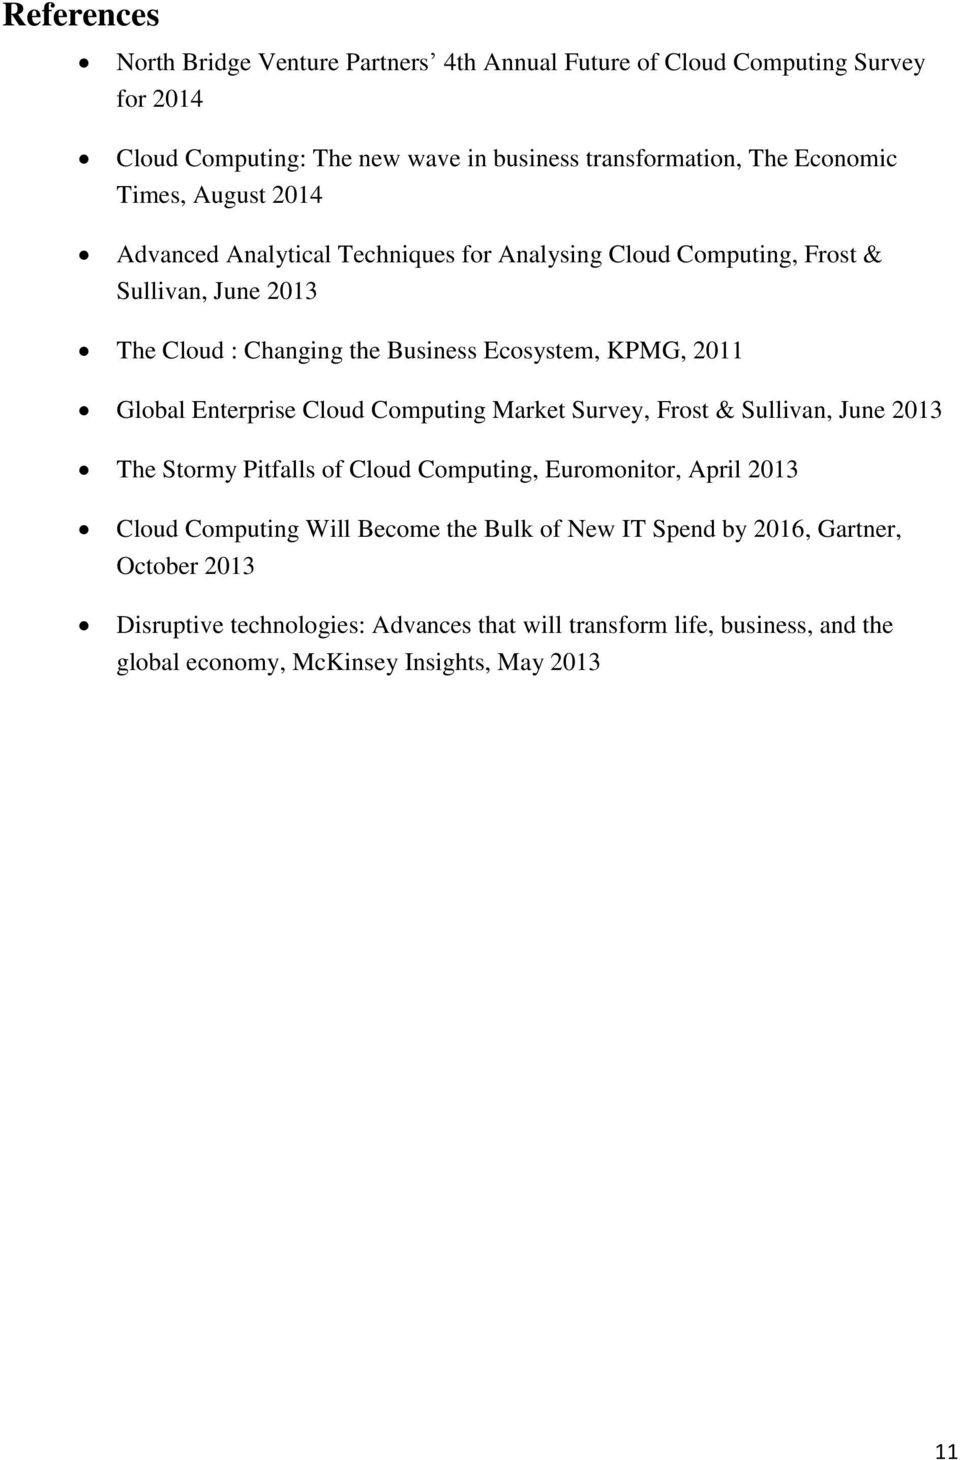 Global Enterprise Cloud Computing Market Survey, Frost & Sullivan, June 2013 The Stormy Pitfalls of Cloud Computing, Euromonitor, April 2013 Cloud Computing Will Become